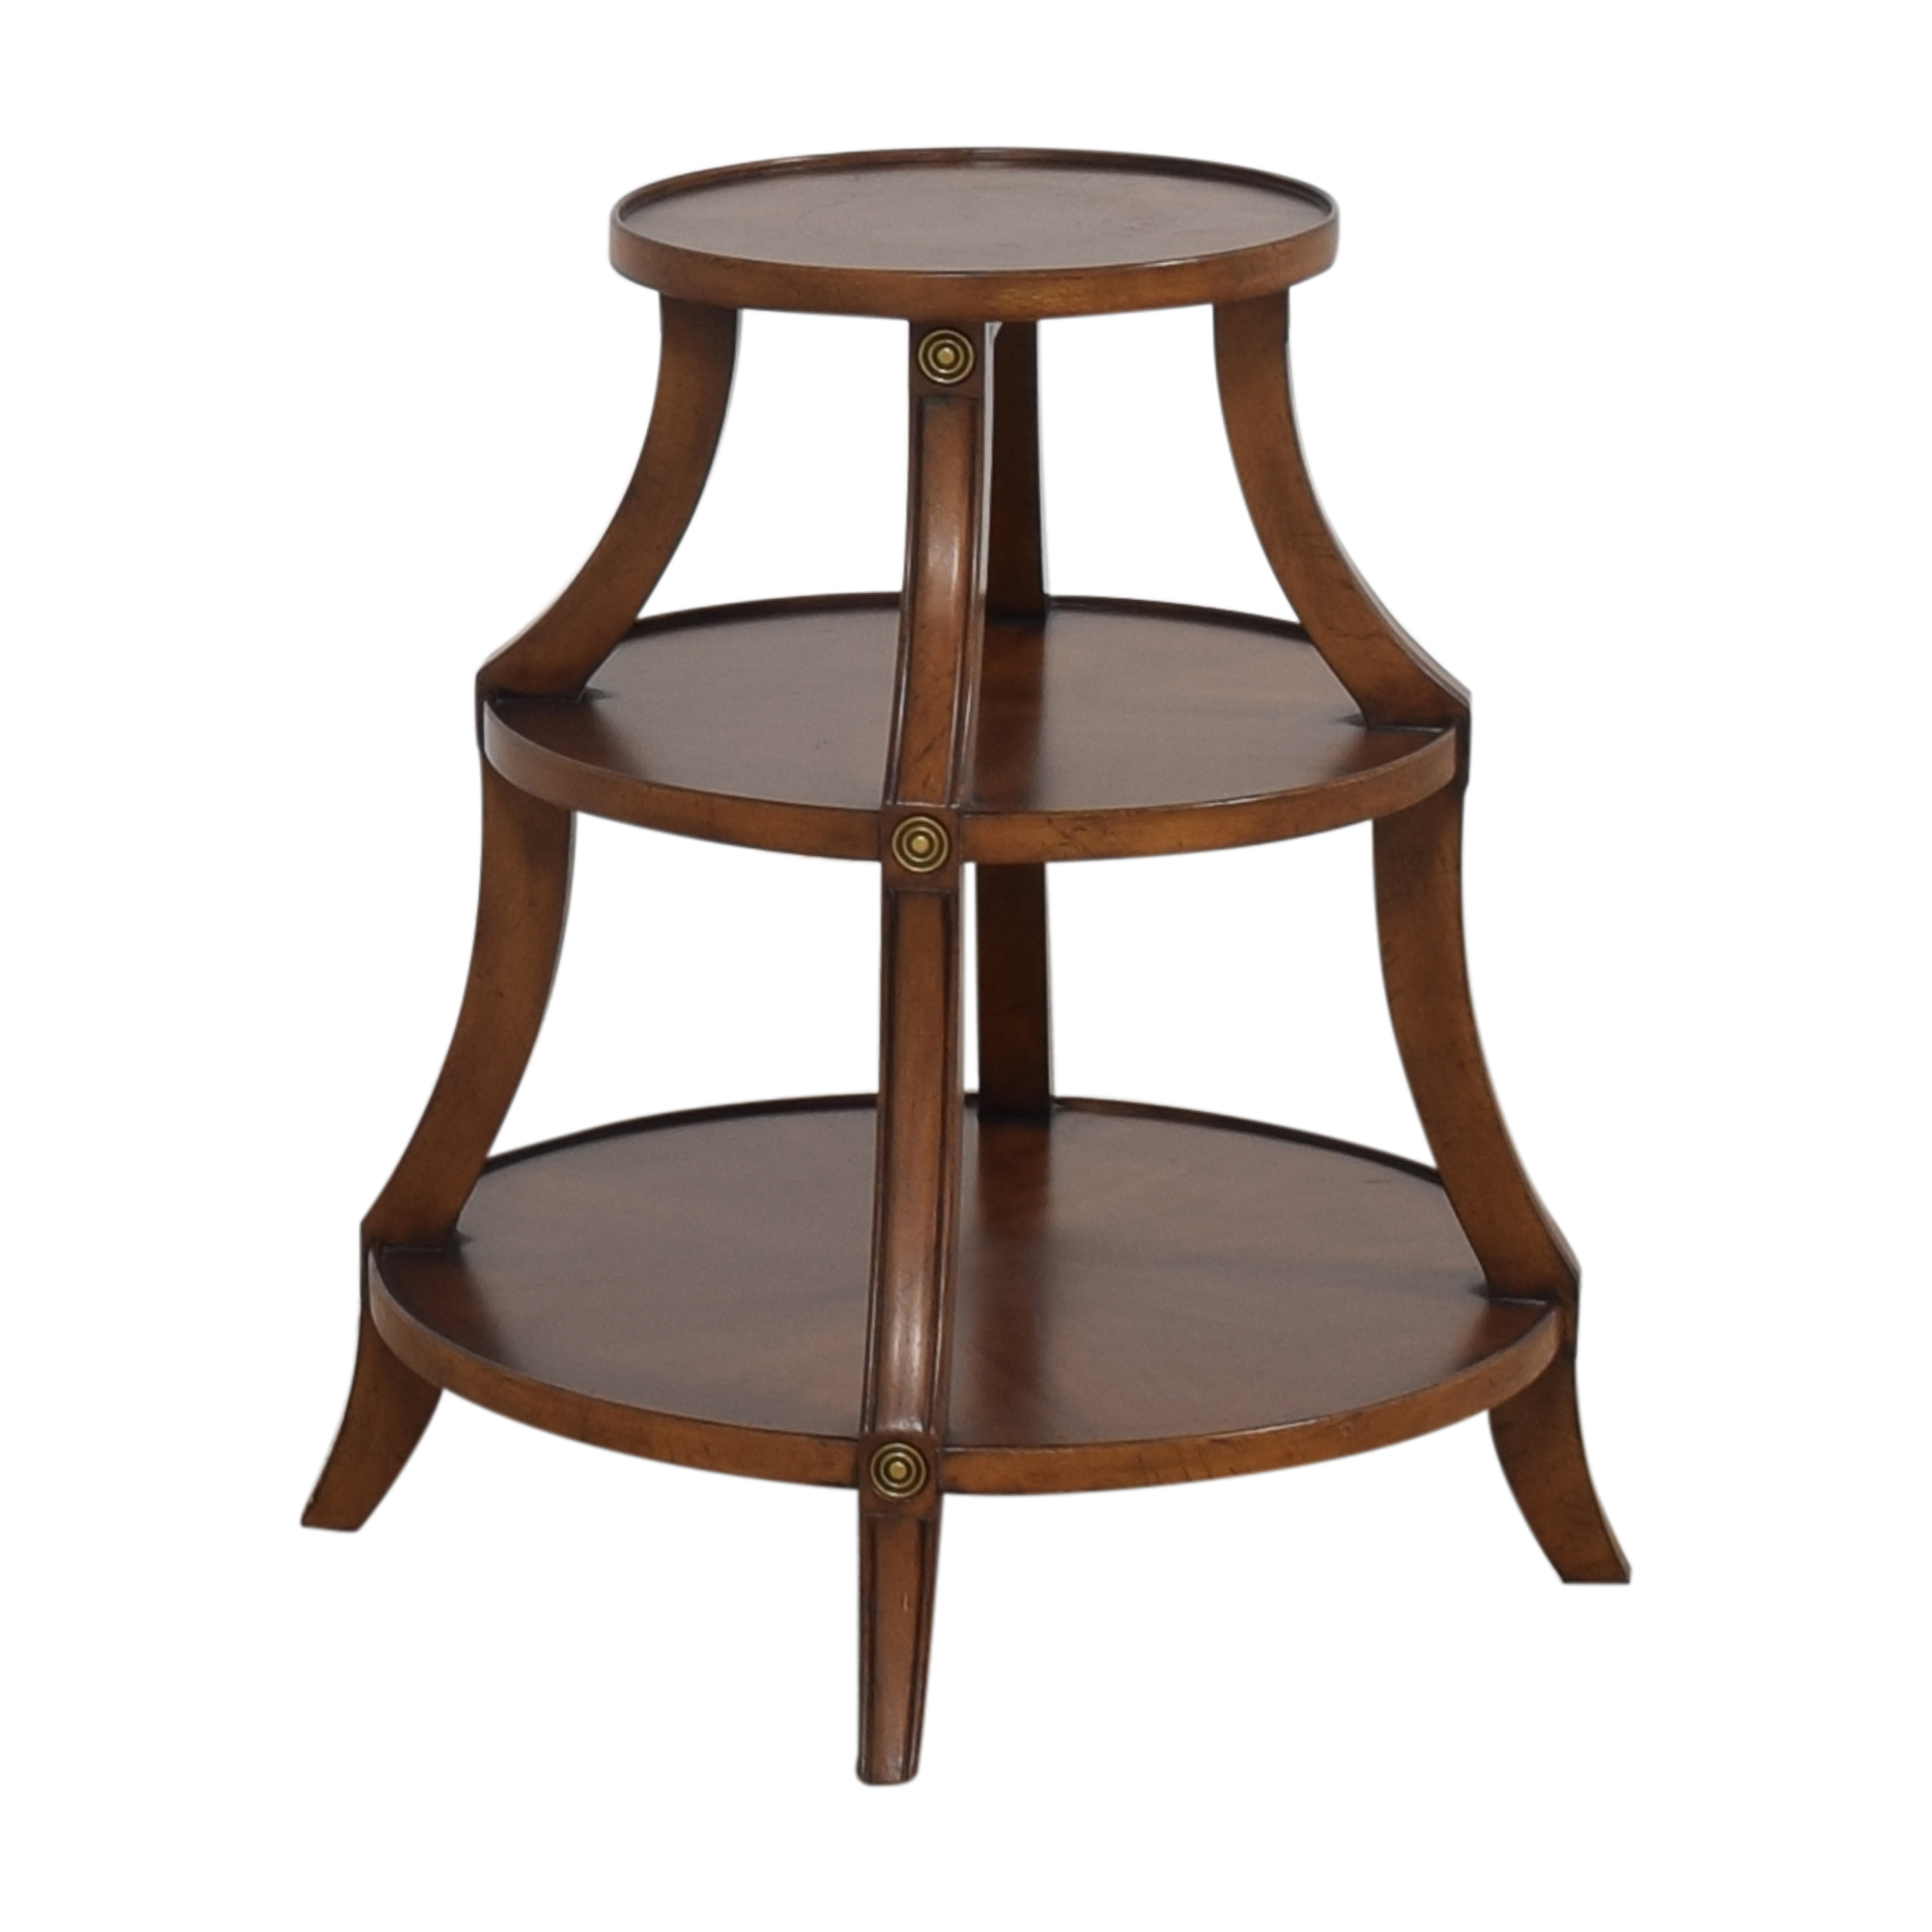 Ethan Allen Ethan Allen Tiered Accent Table ct